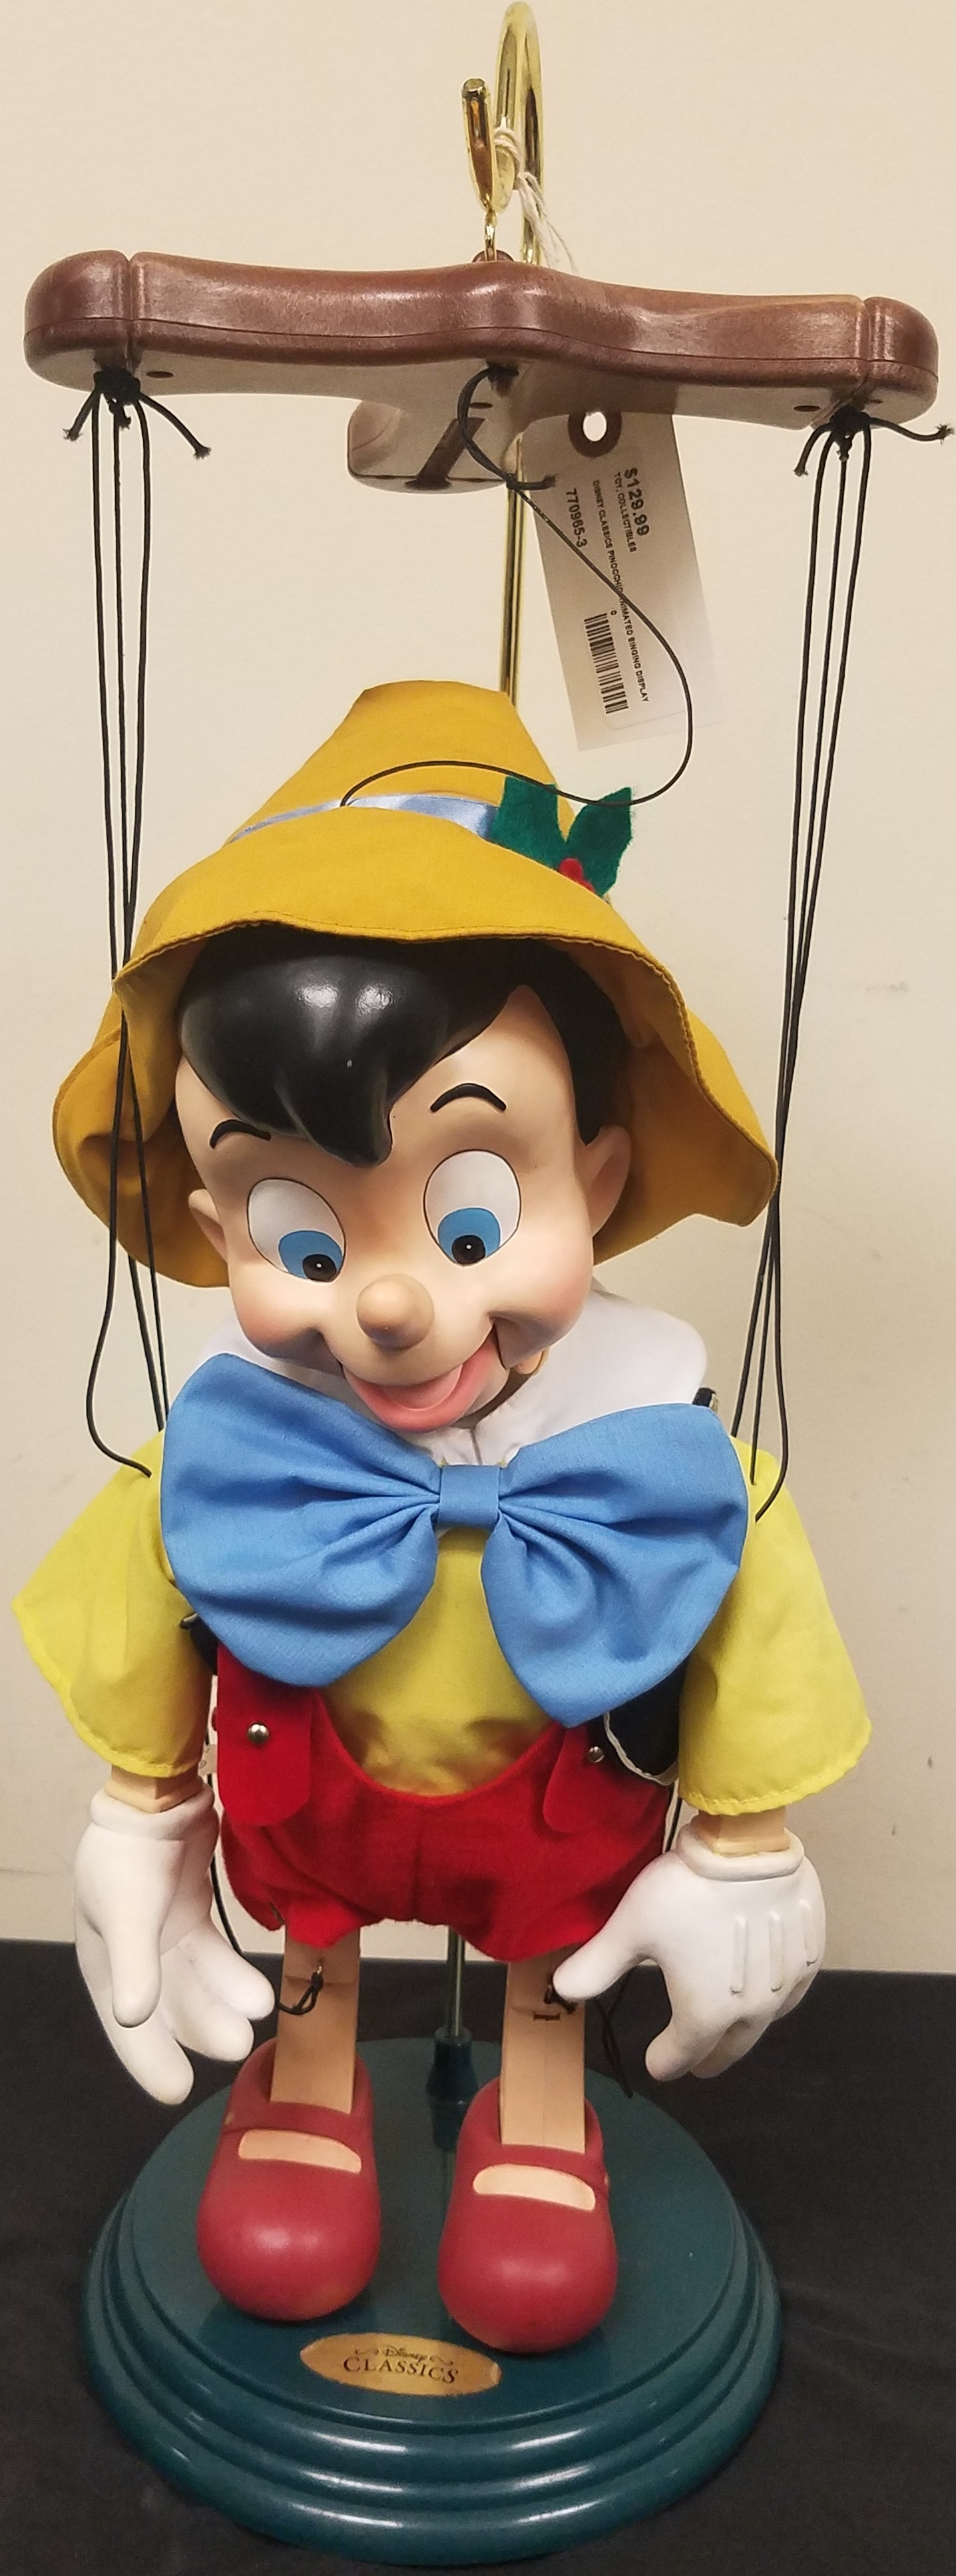 VINTAGE DISNEY CLASSICS PINOCCHIO ANIMATED SINGING DISPLAY FIGURE